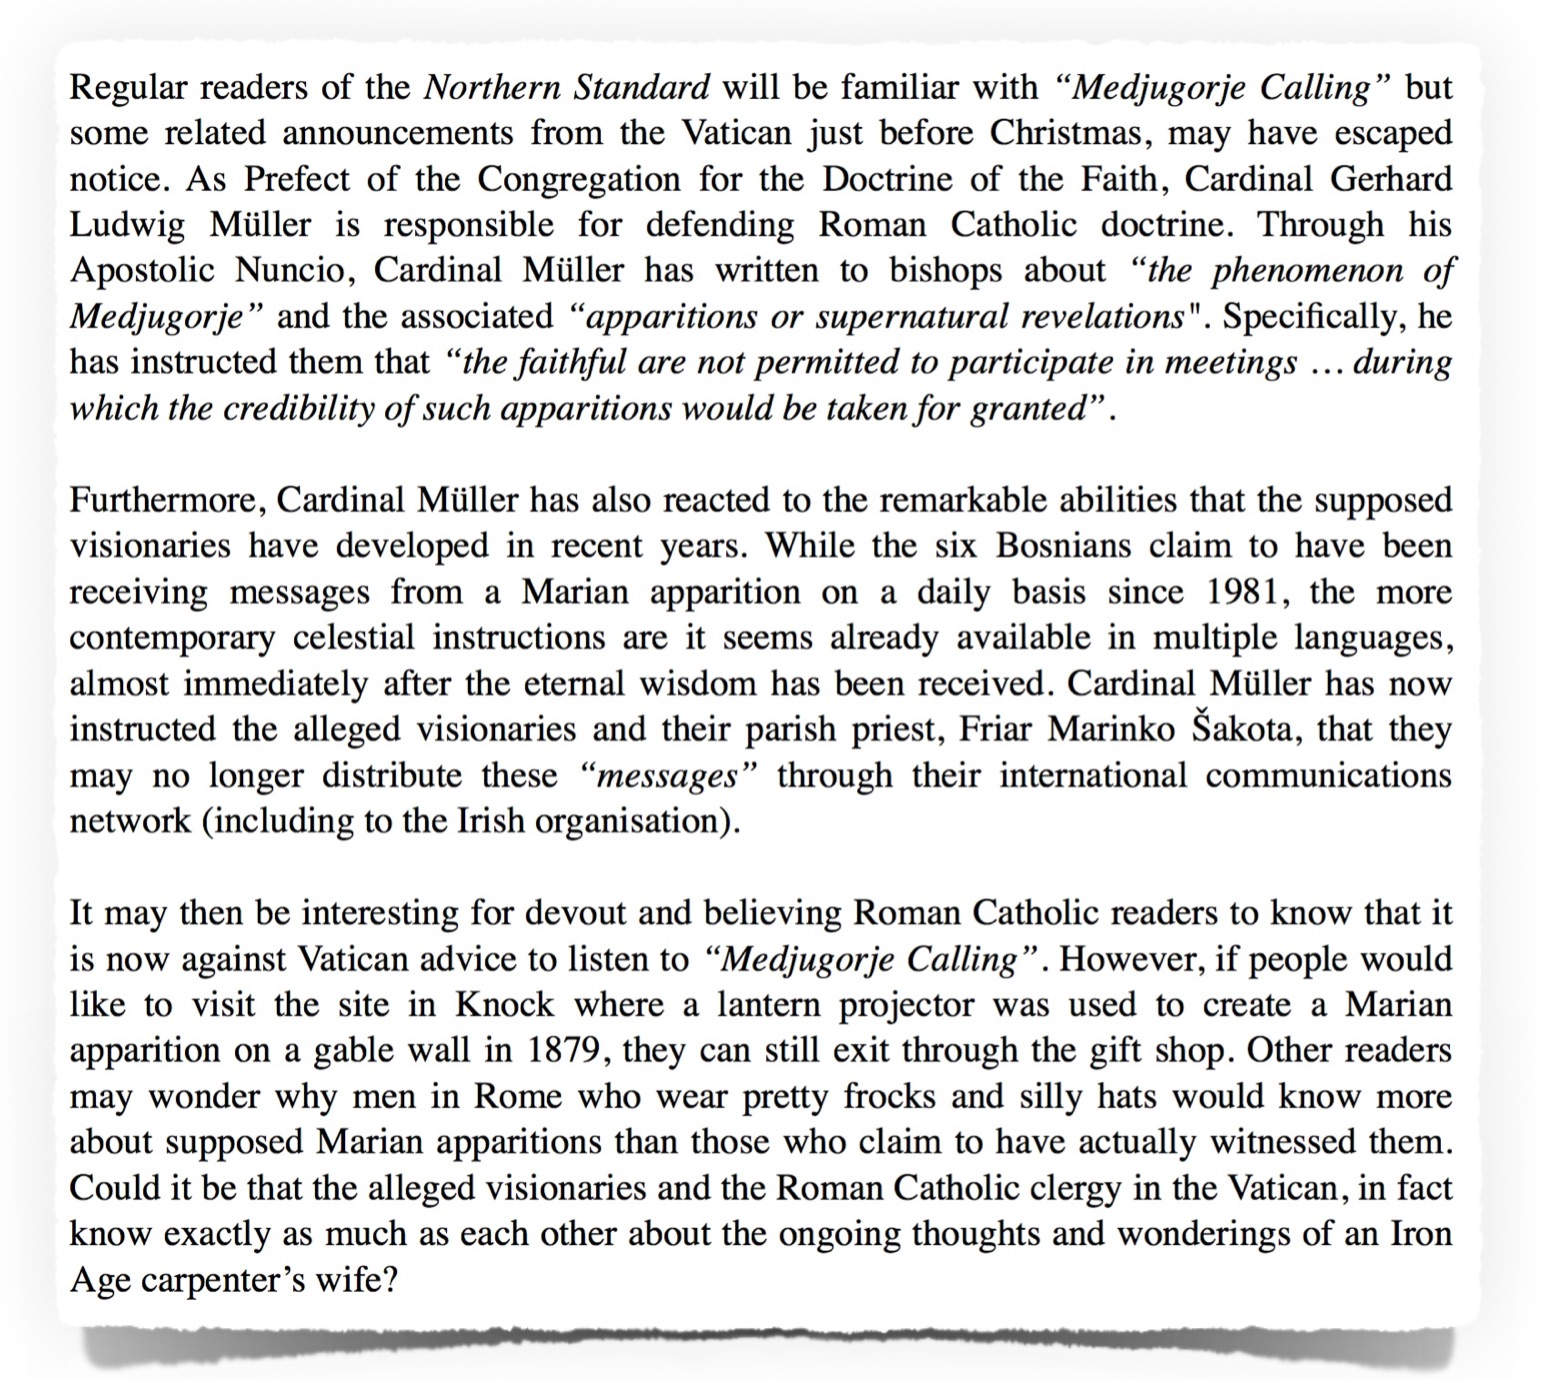 Text of Atheist Ireland Submission on Medjugorje